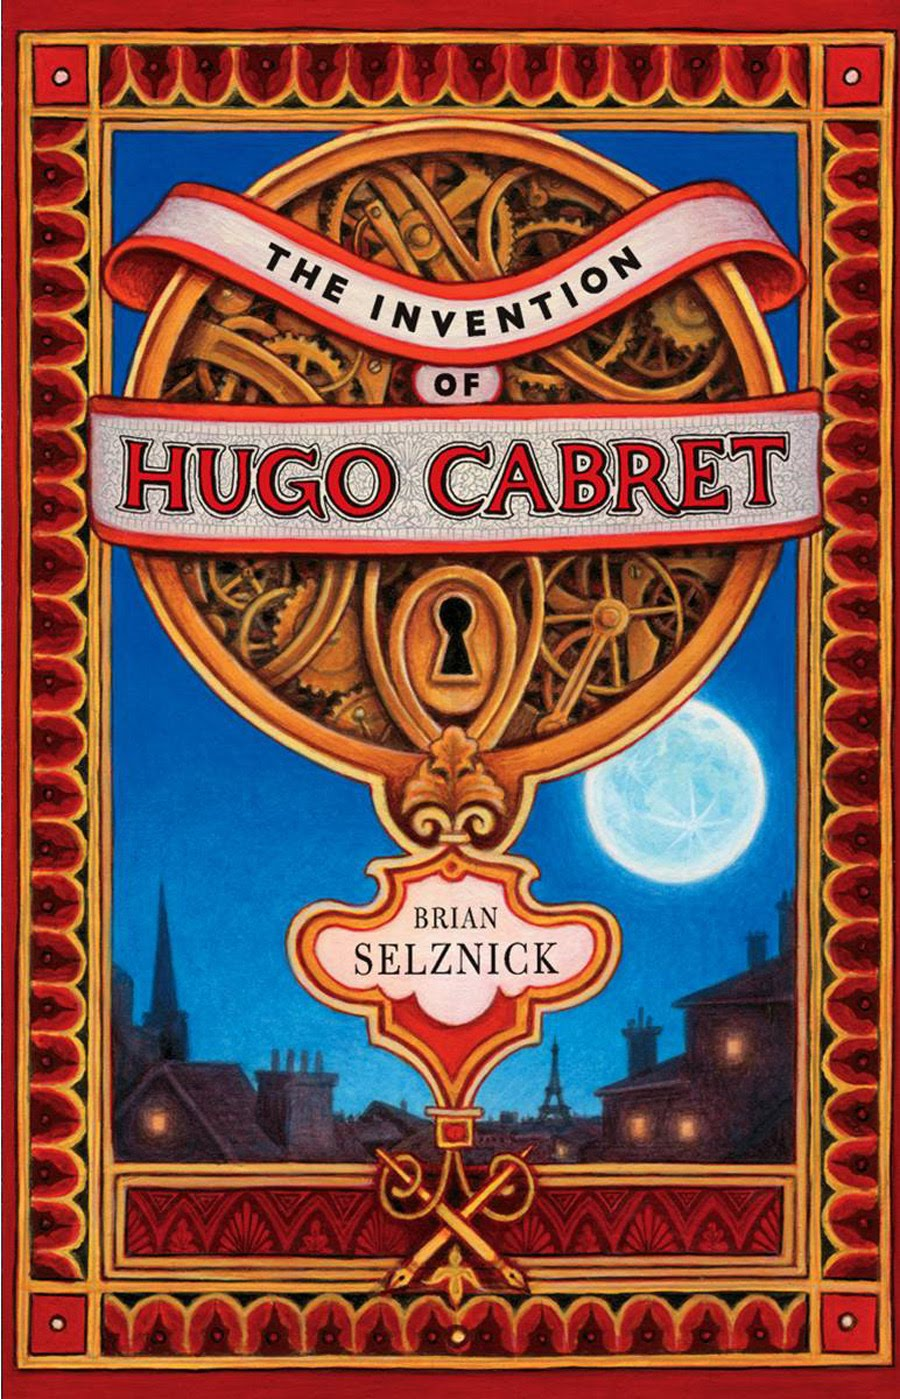 The_Invention_of_Hugo_Cabret.jpg